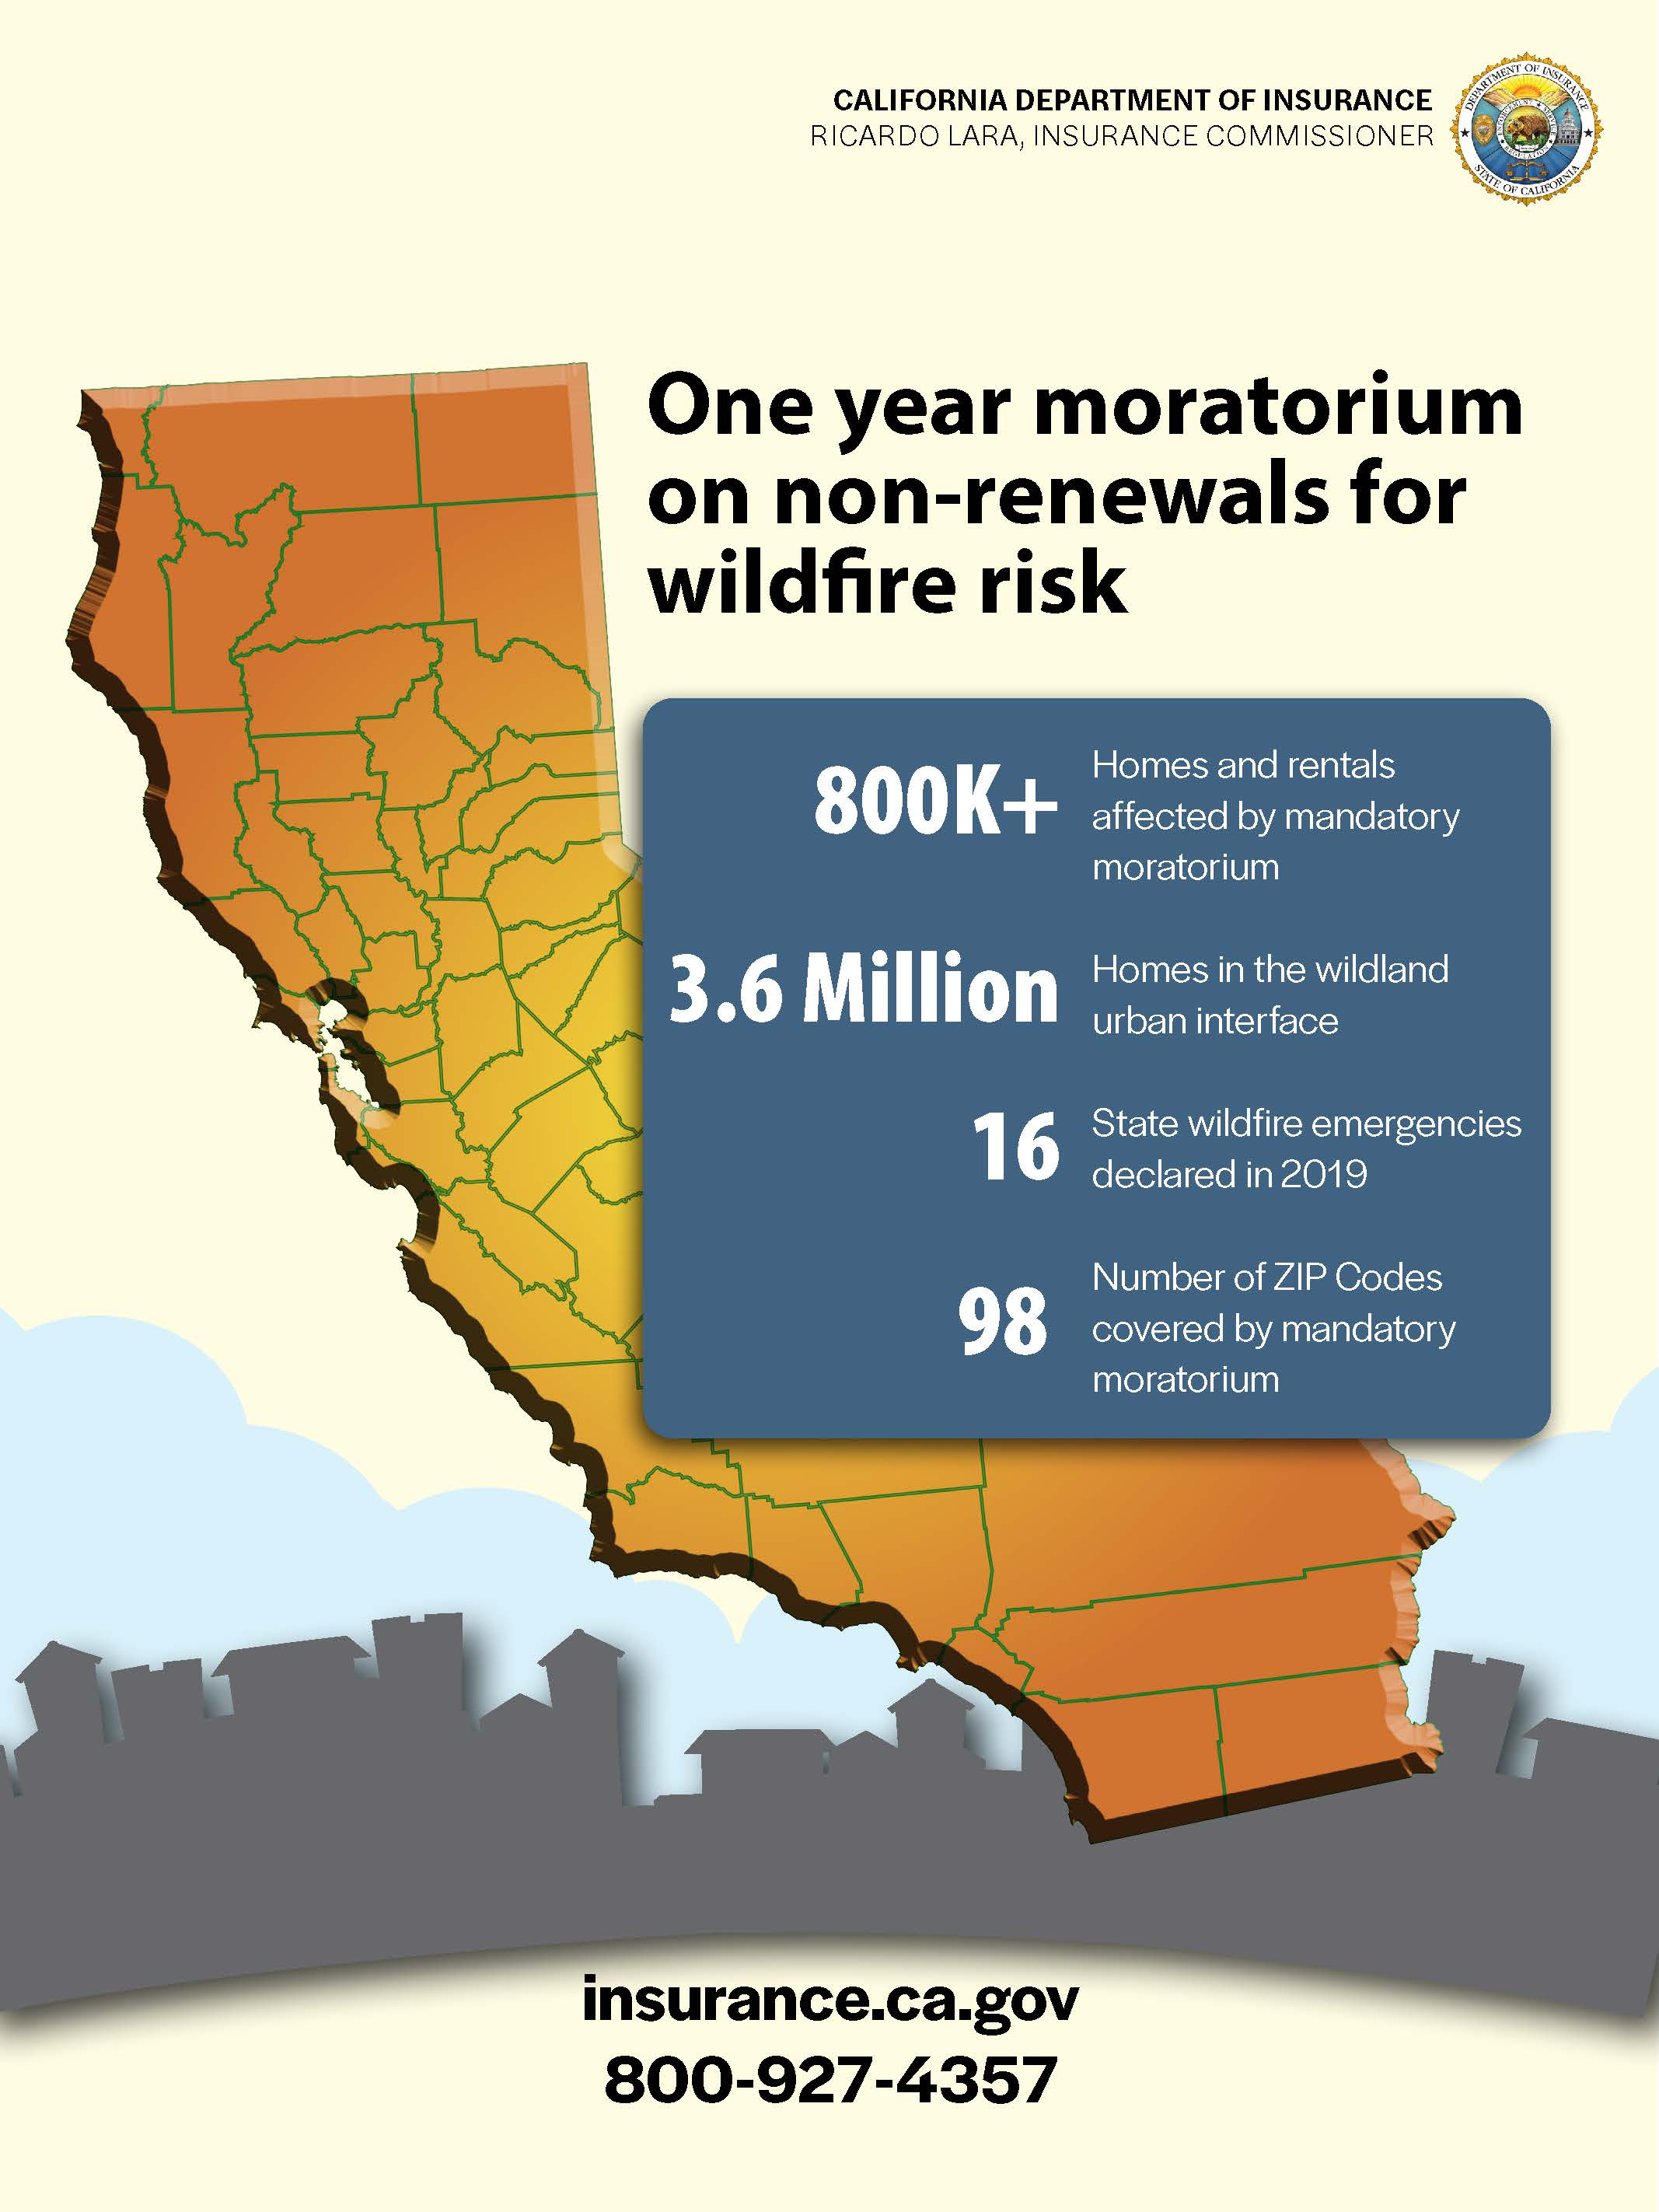 One Year Moratorium on Non-Renewals for Wildfire Risk